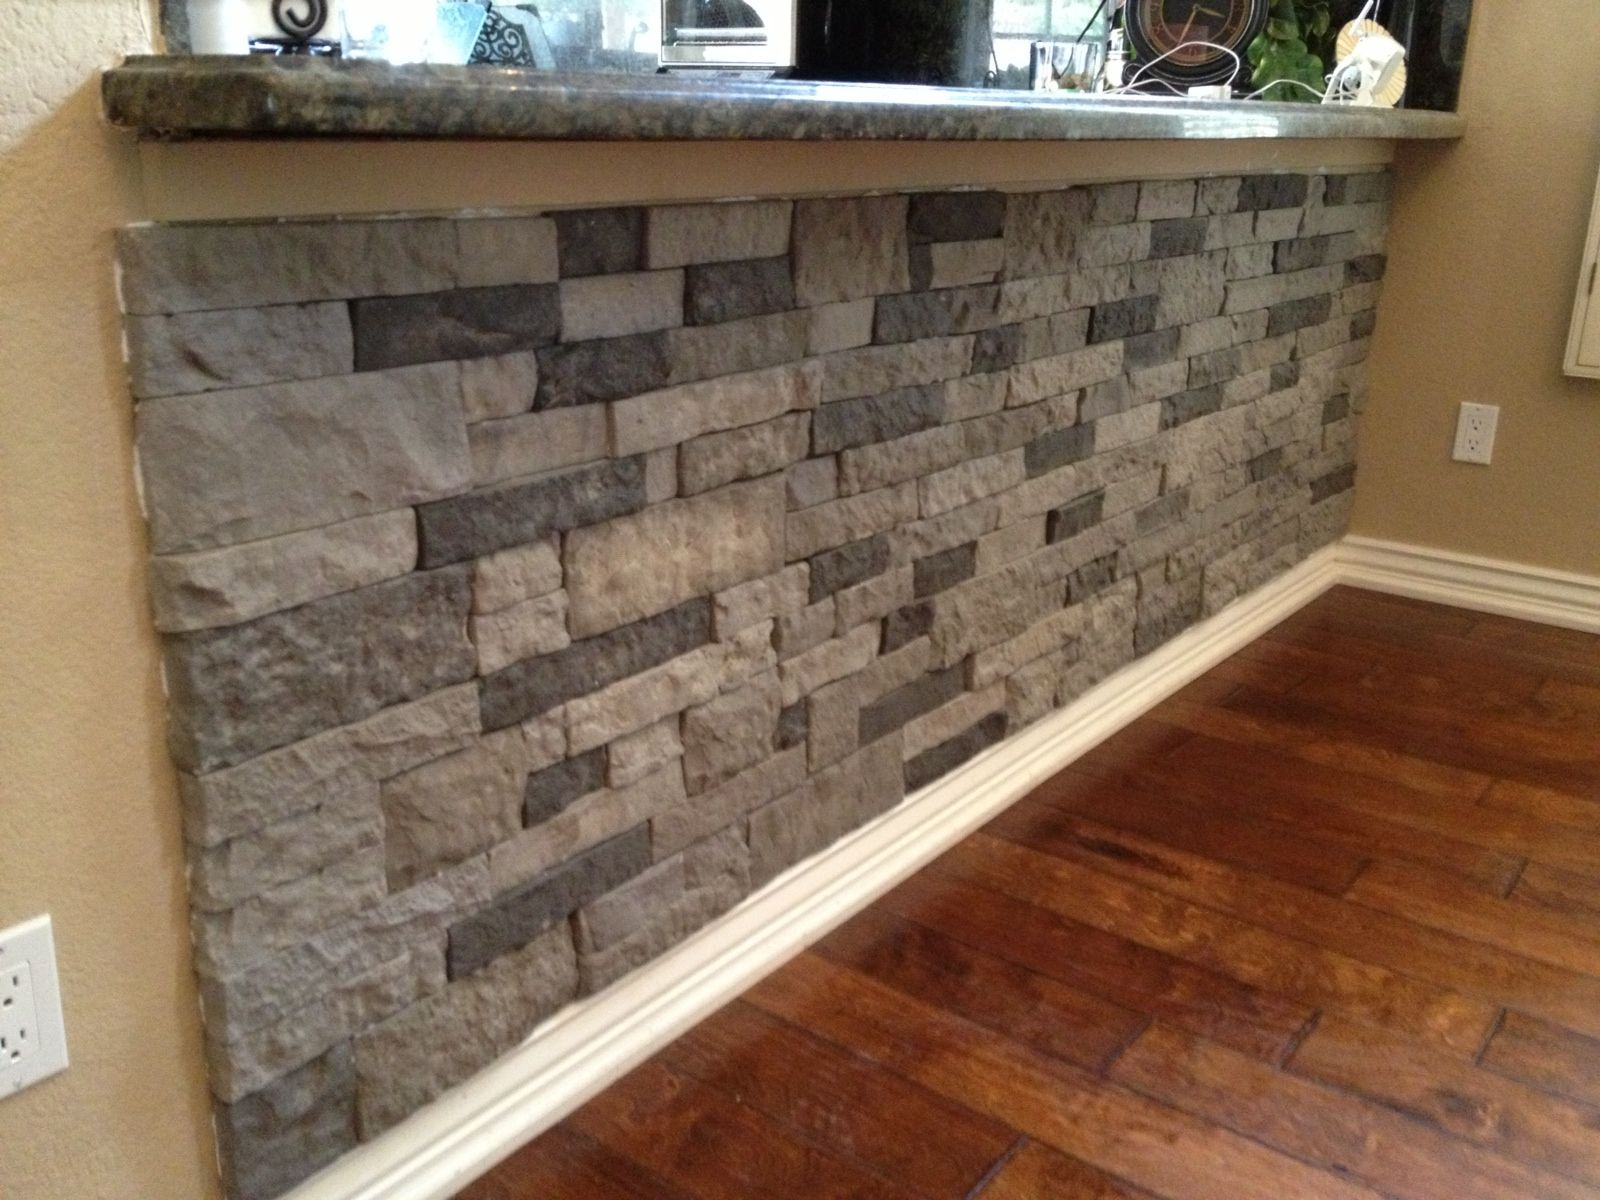 Faux Granite Countertops Lowes Airstone From Lowes Love It Kitchen Pinterest